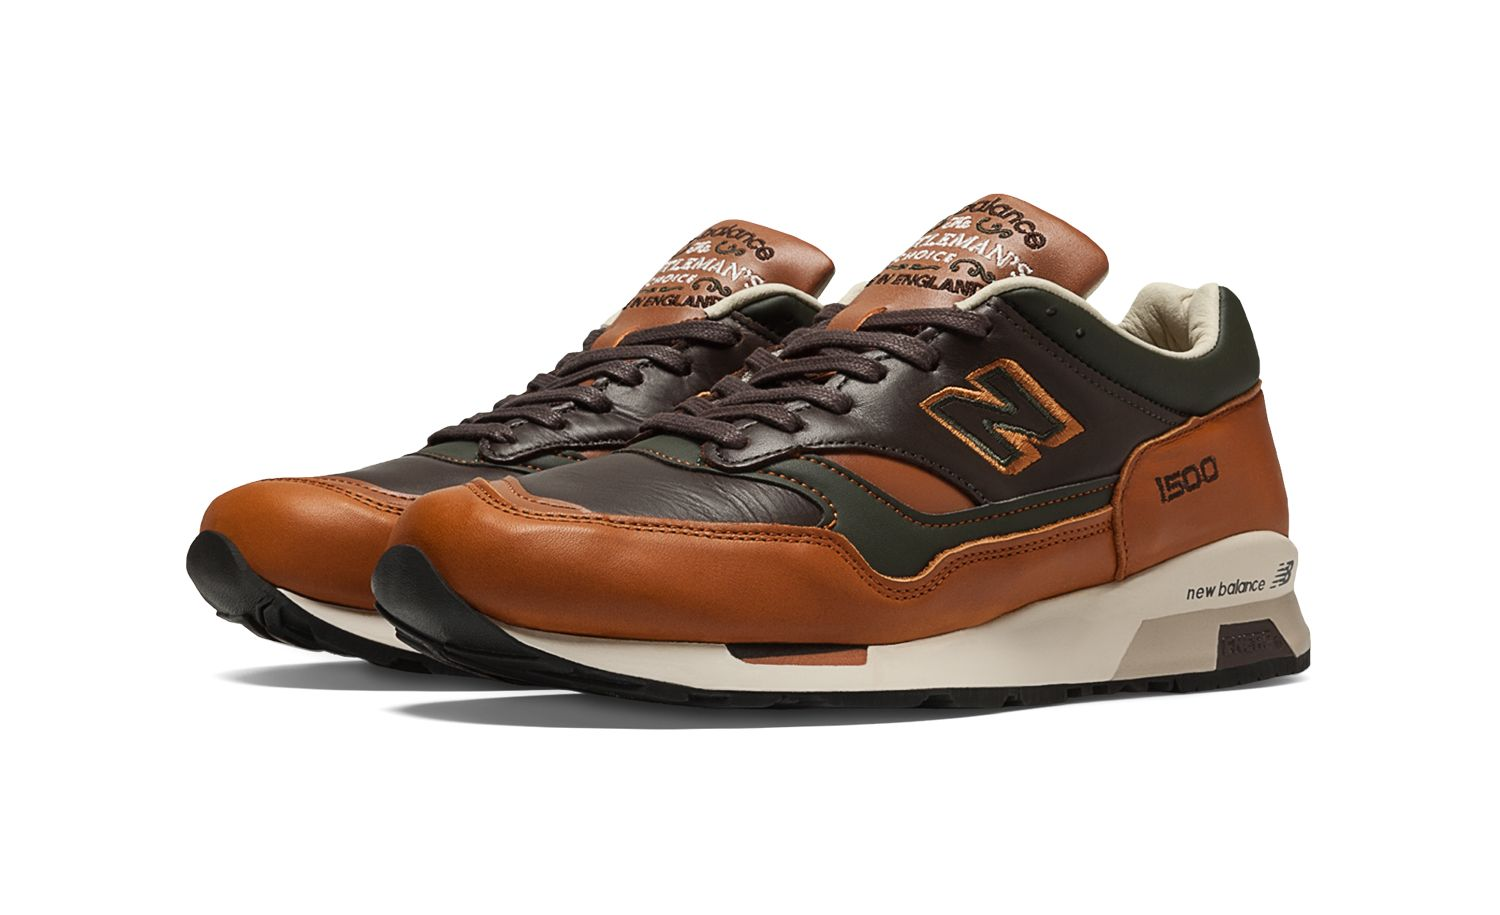 New Balance 1500 Gentelman Pack Made in UK